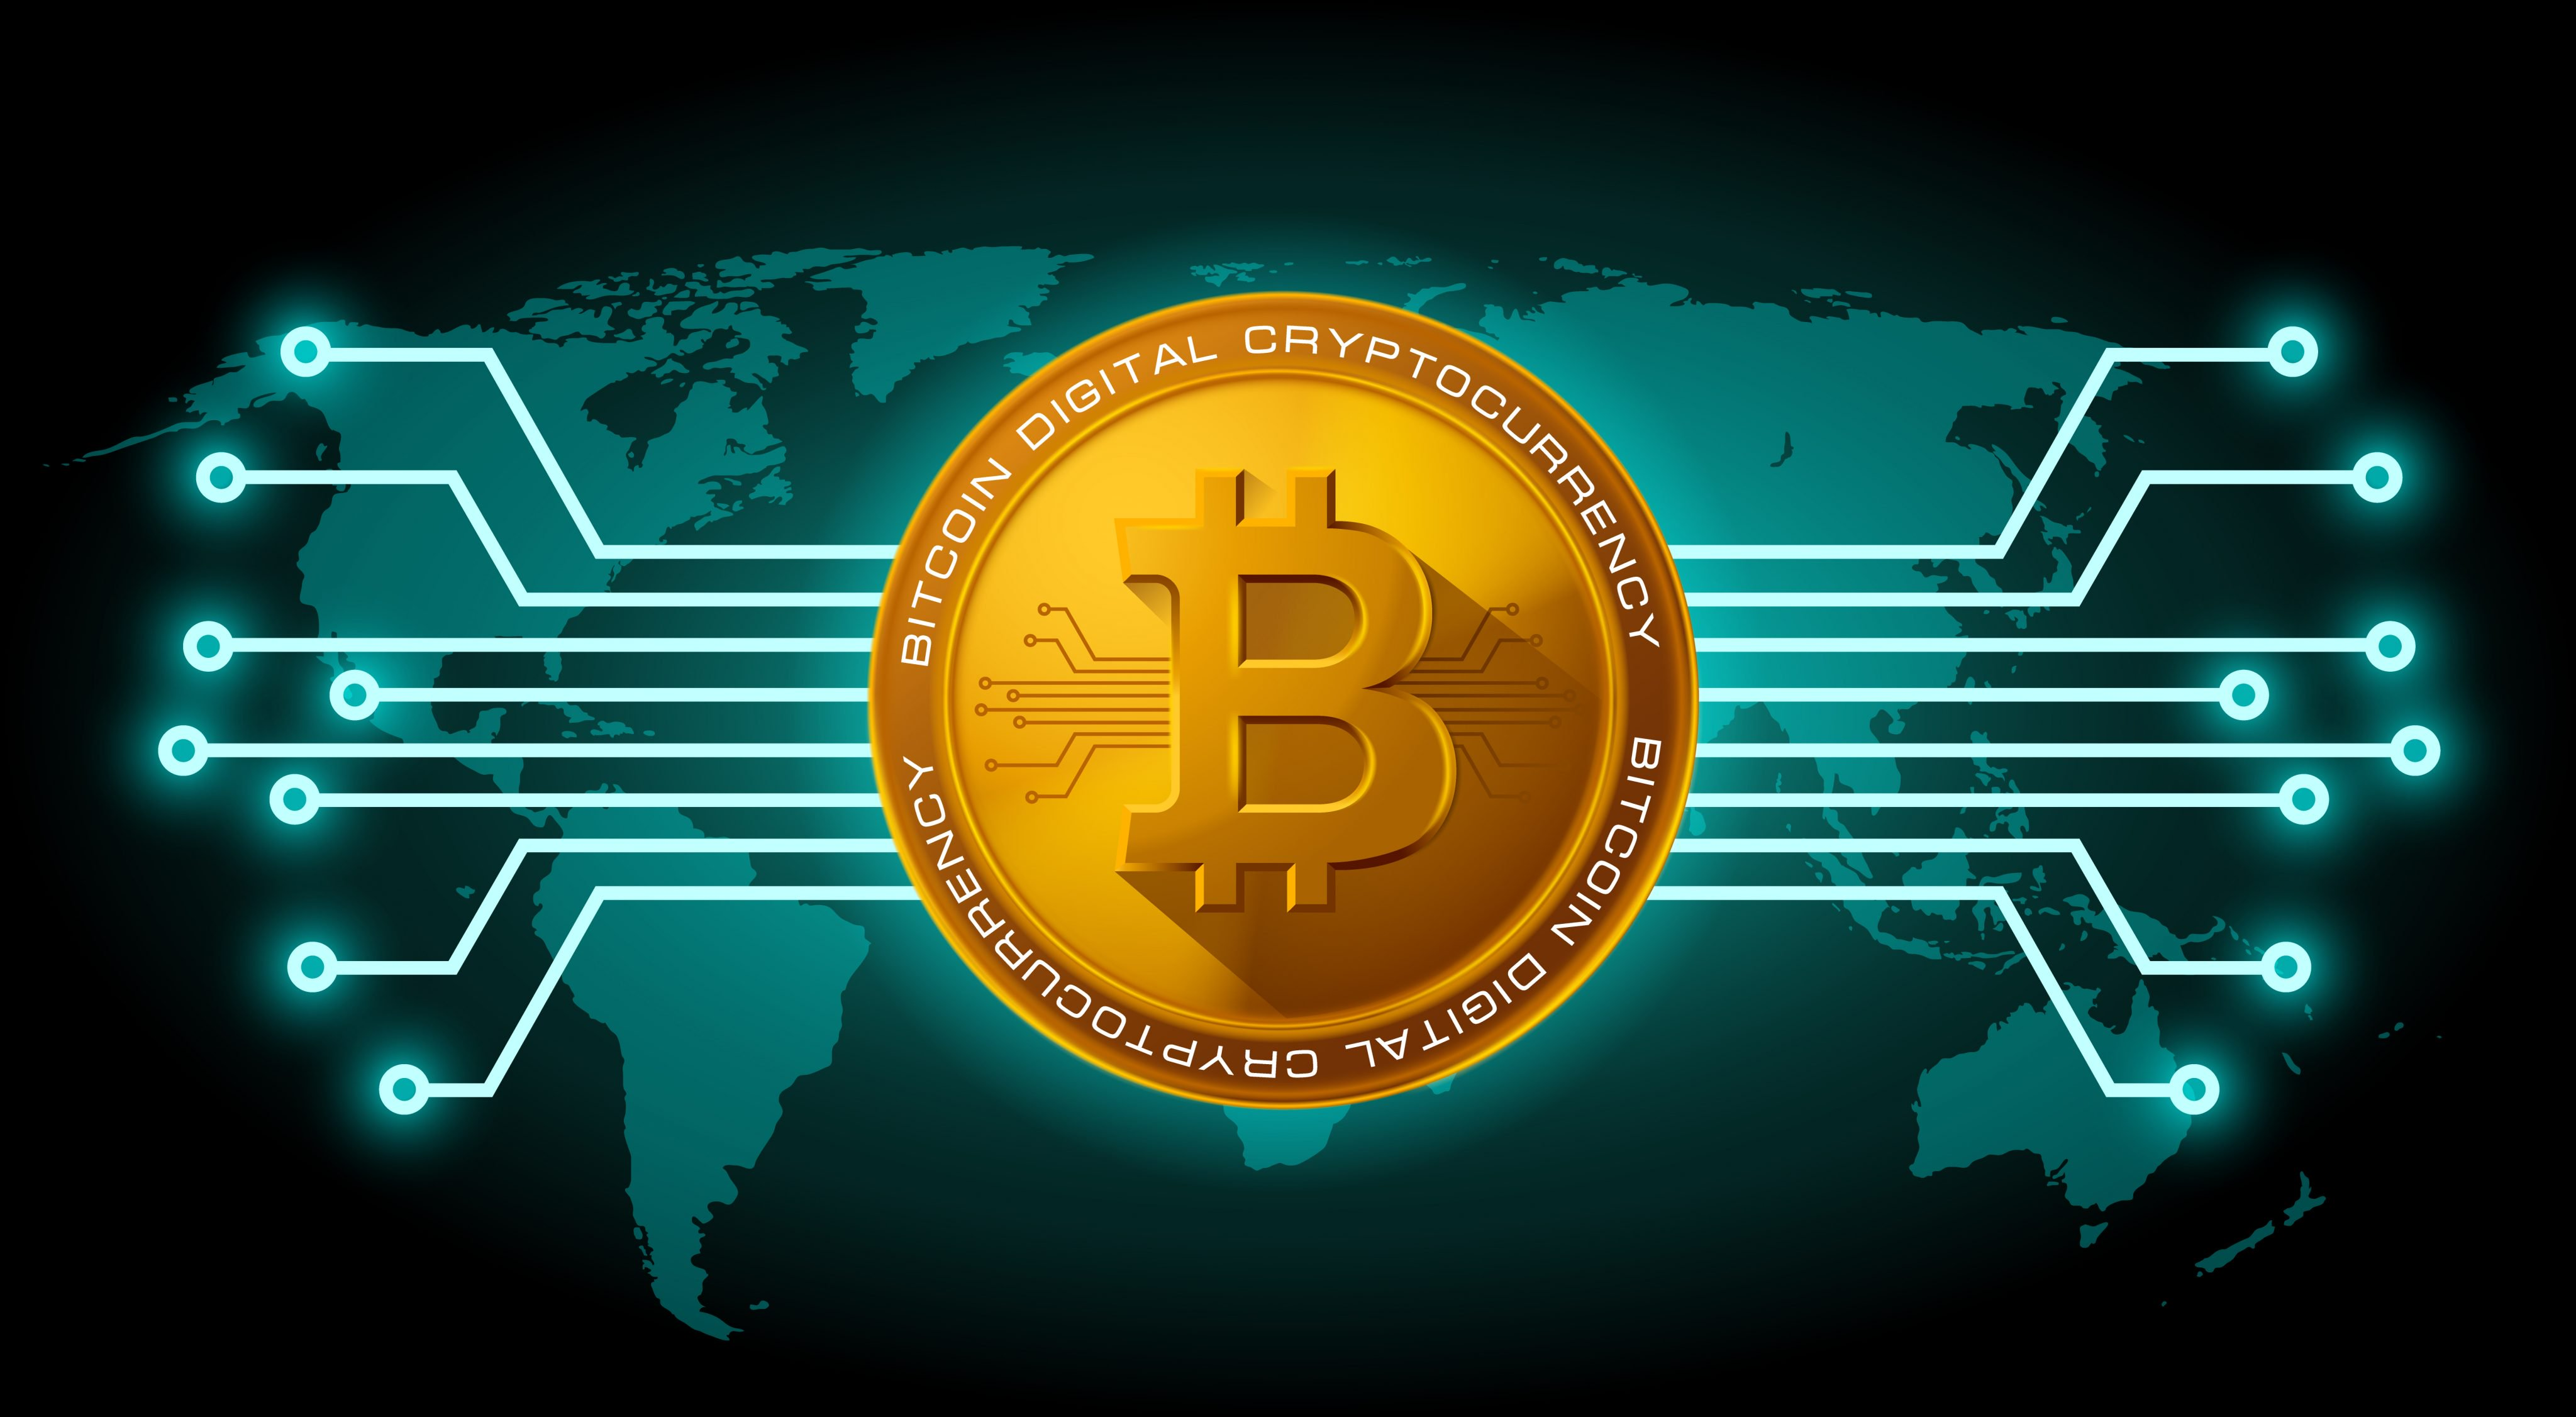 bitcoins - Pay for Dedicated Server with Bitcoin